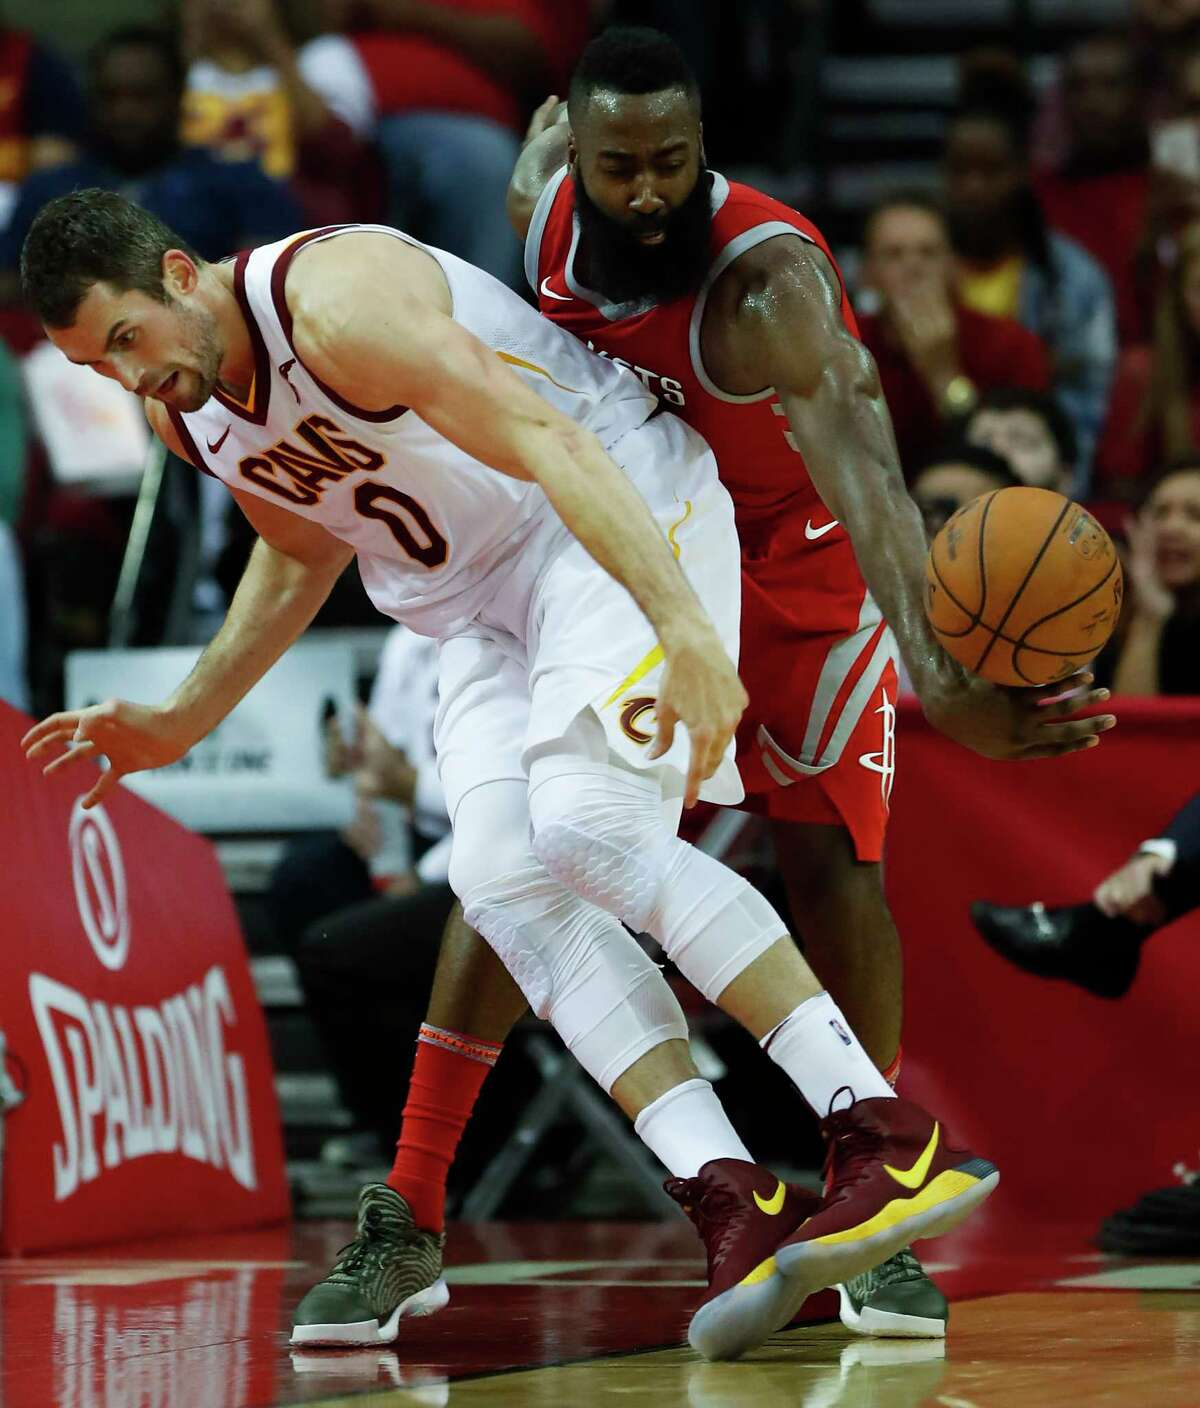 Rockets guard James Harden, right, pulls a surprise attack from behind to steal the ball away from Cavaliers forward Kevin Love during the first half at Toyota Center on Thursday night.